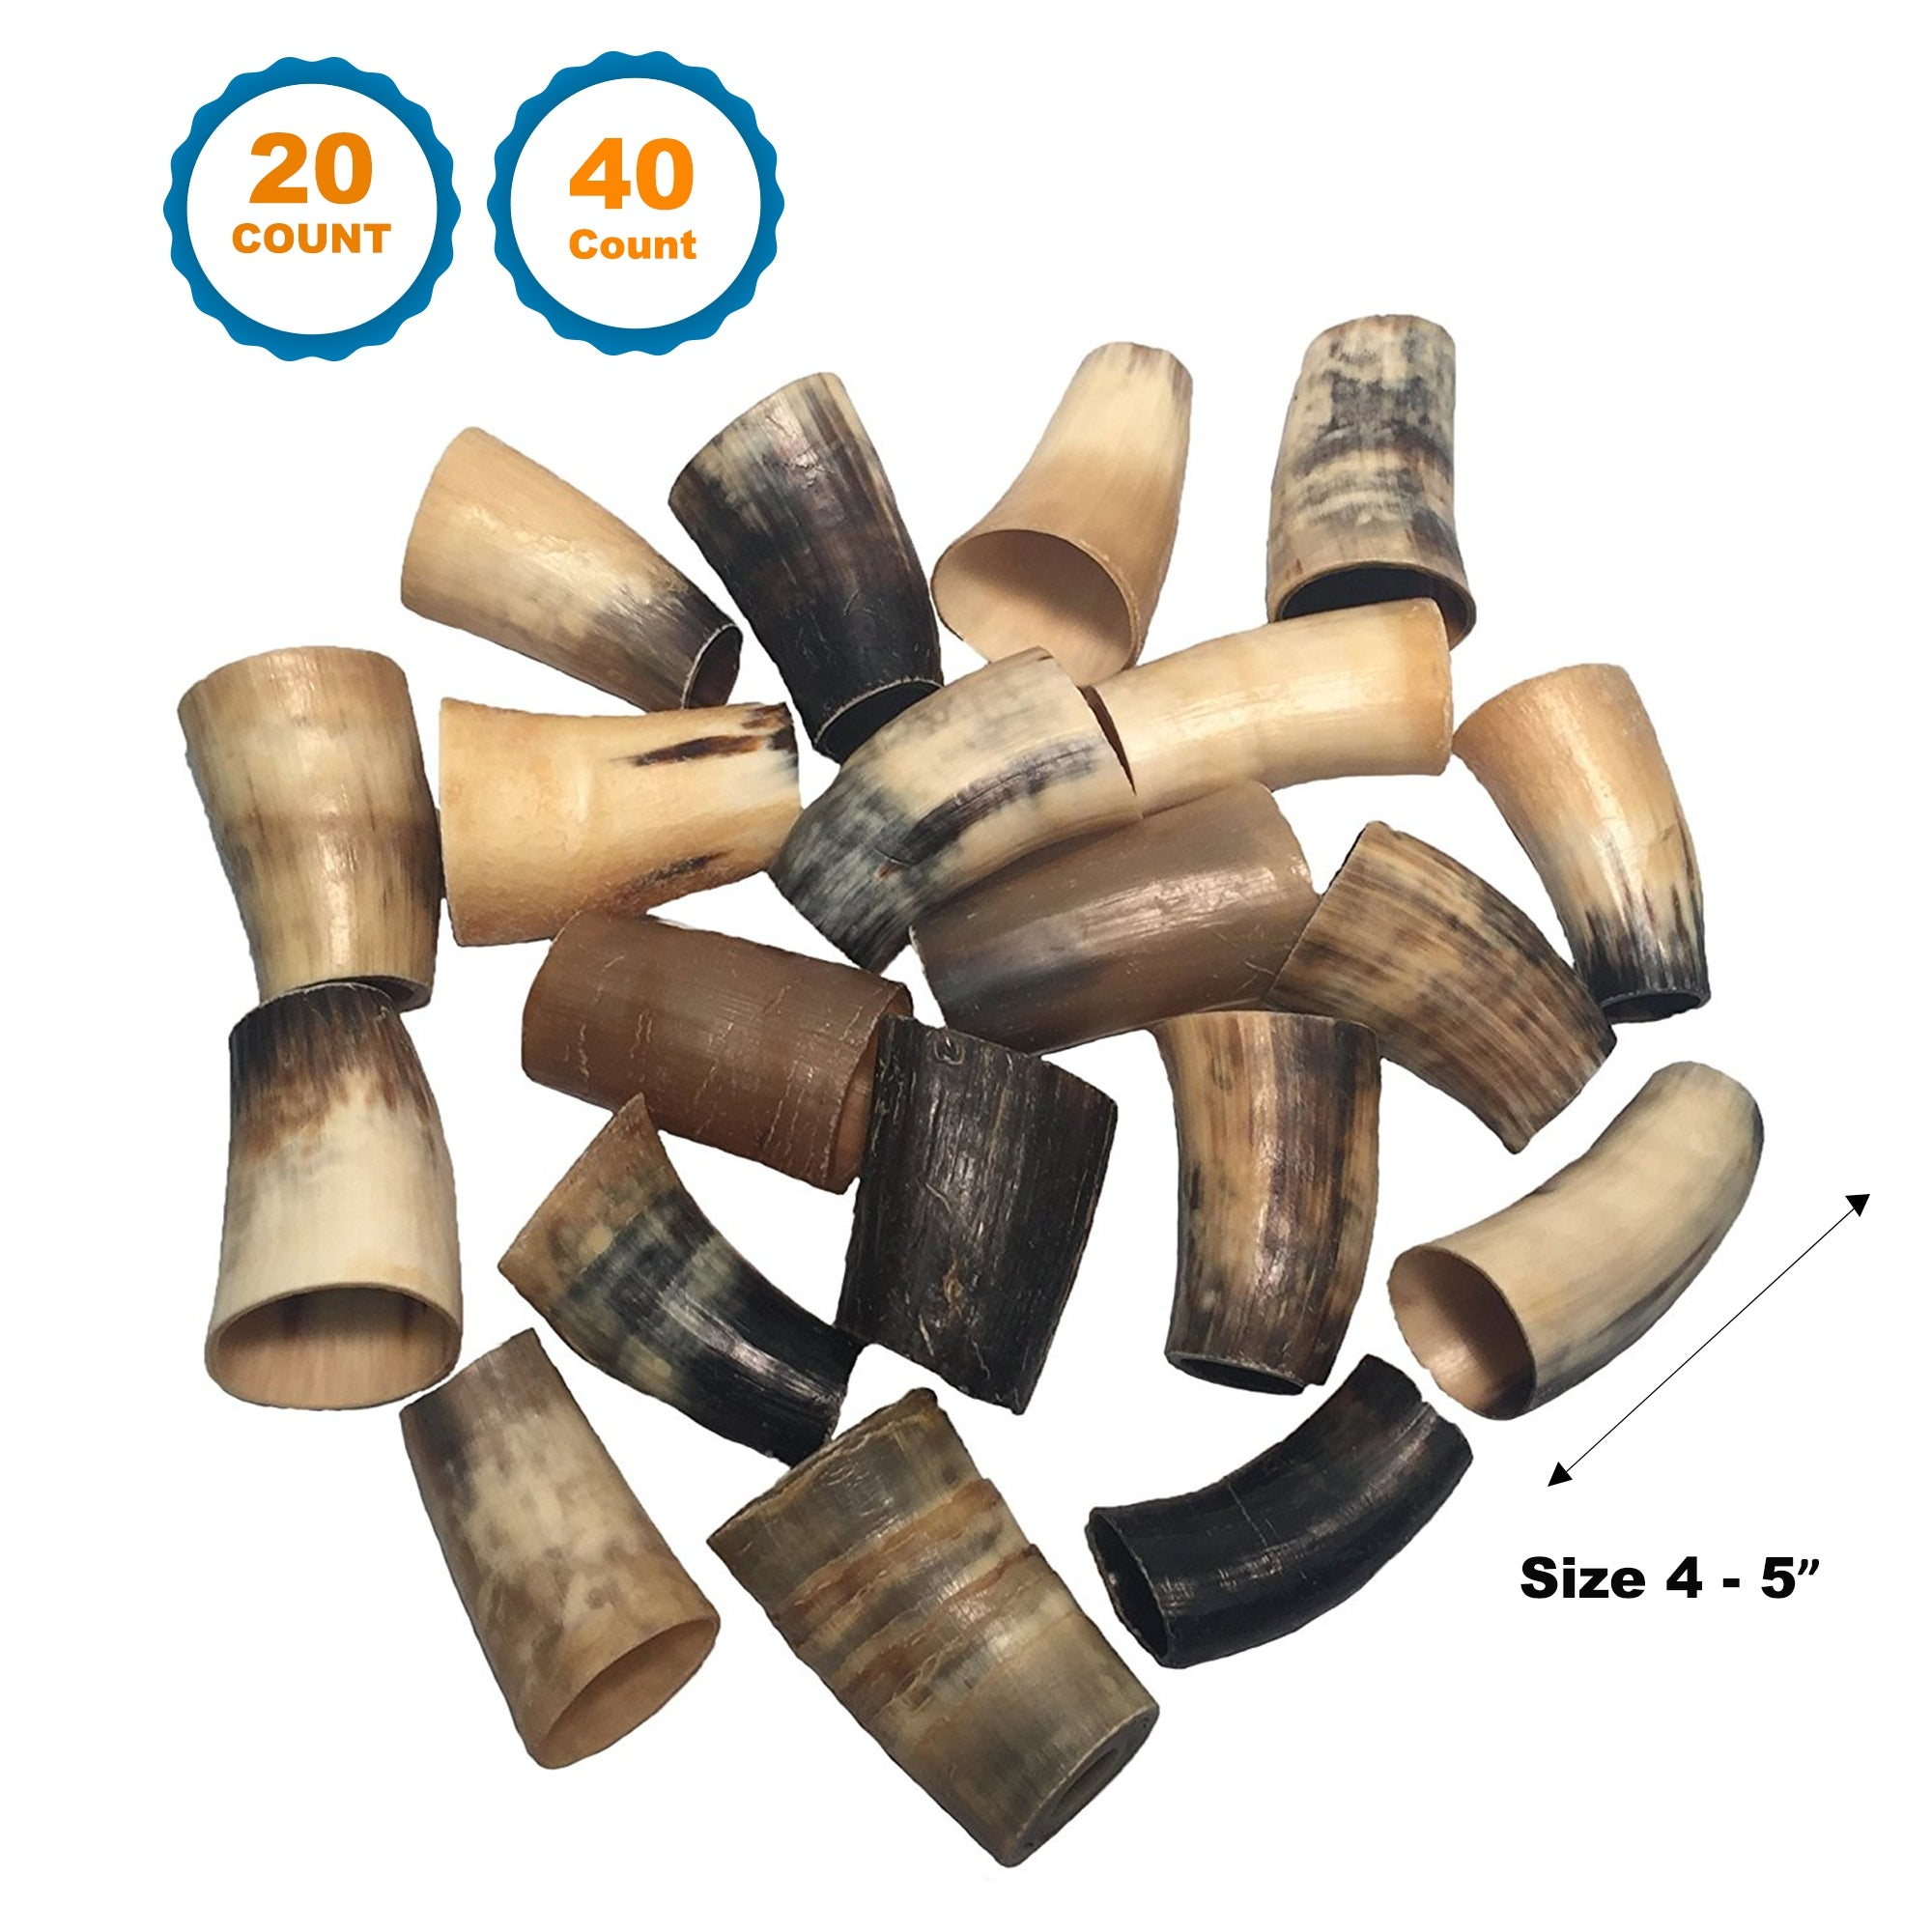 4 to 5 inch | BEEF HORNS - 100% Natural Long lasting Horns for dogs 20 or 40 Count | Water Buffalo Dog Chew by 123 Treats